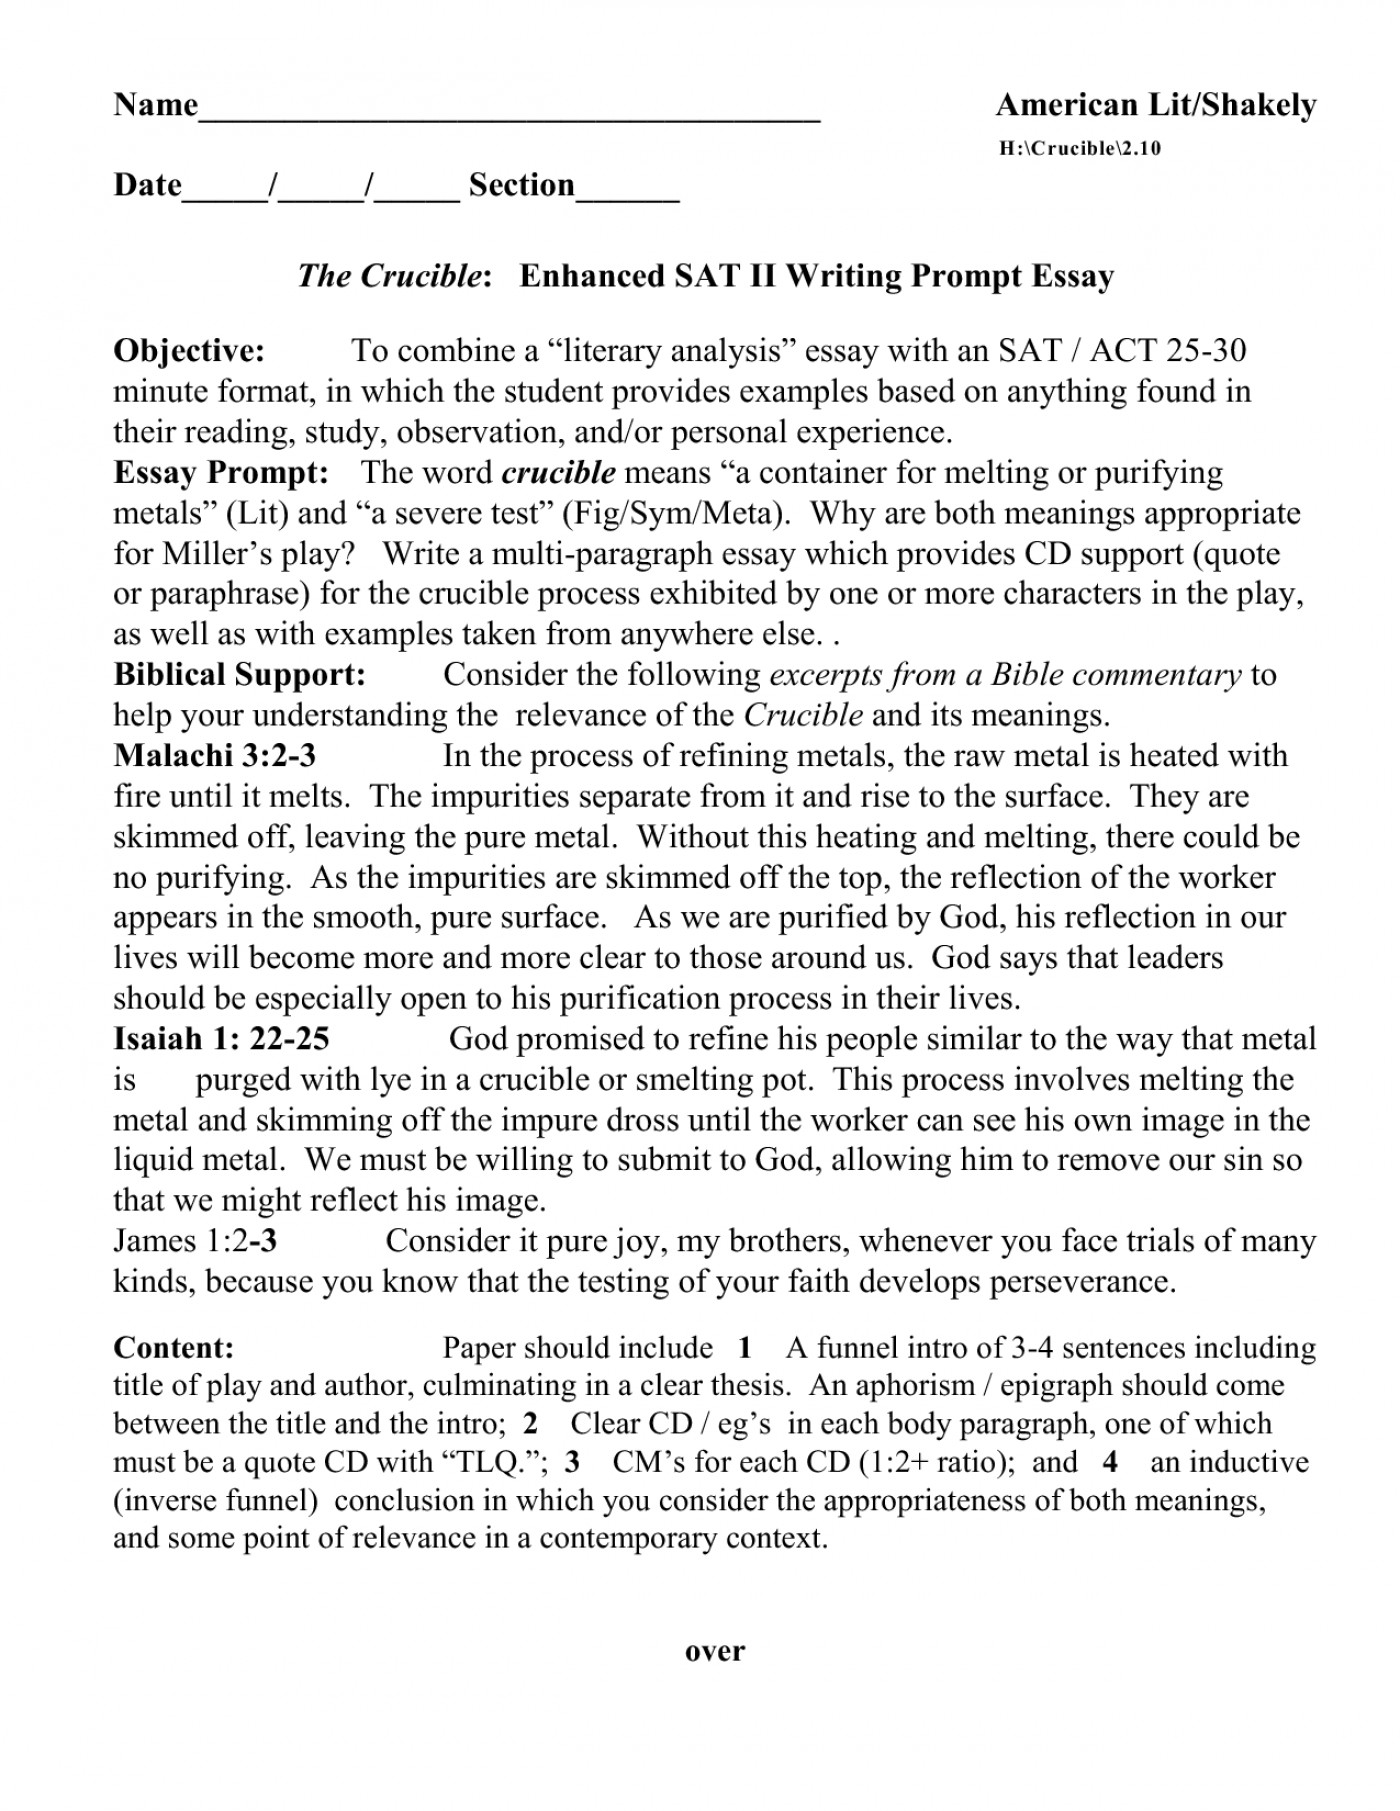 006 Sat Essays Quotes Quotesgram Is There An On The L Singular Essay Examples Writing Strategies Pdf 888 2018 1400